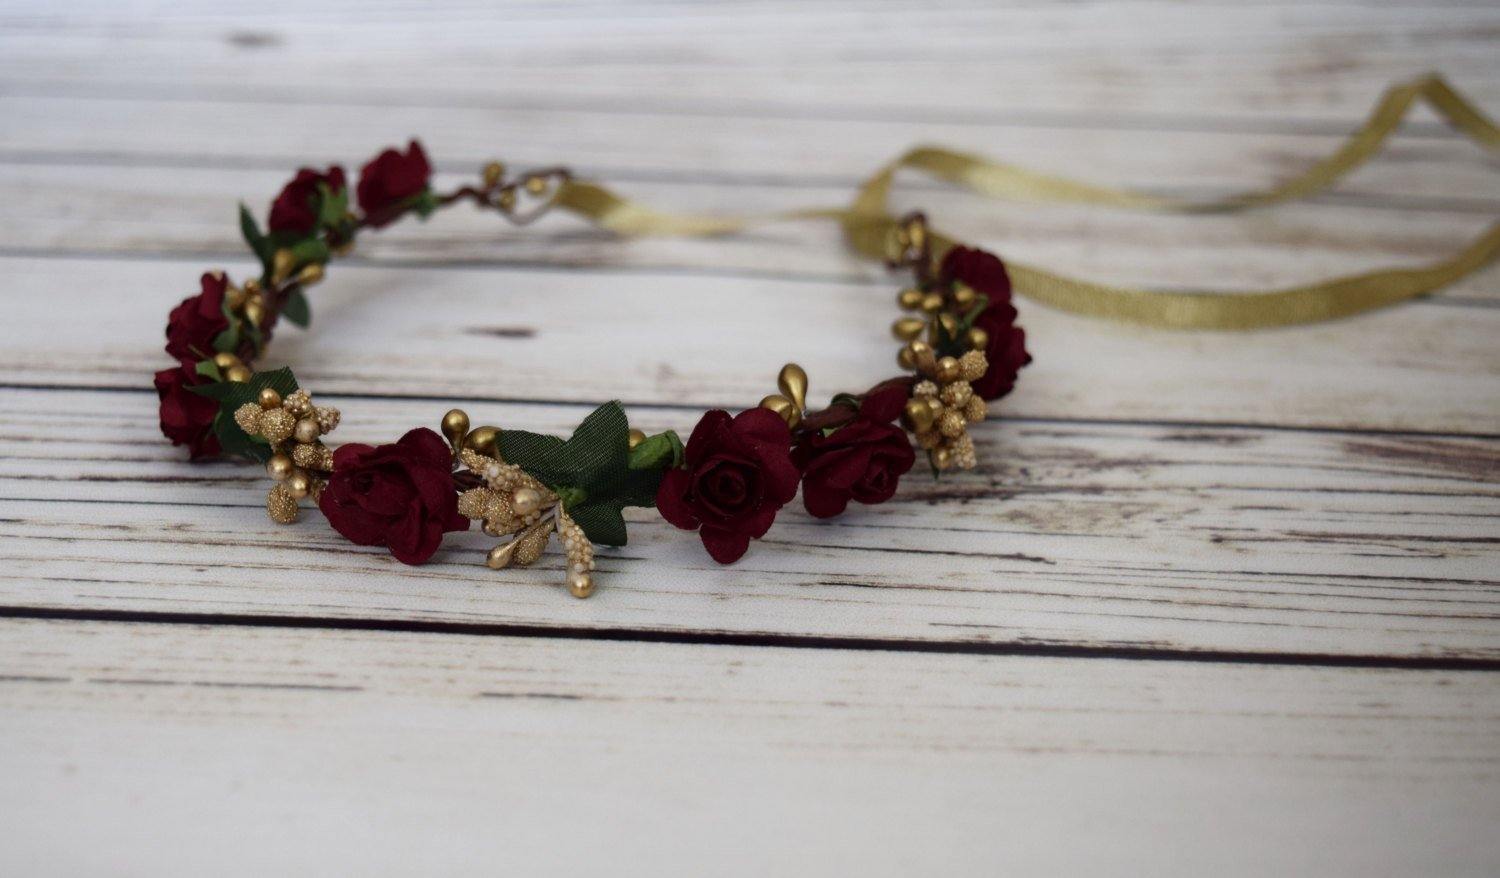 Burgundy and Gold Flower Crown - Boho Flower Crown - Fall Flower Crown - Veil Wreath - Dark Red and Gold Flower Crown - Bridal Halo - Roses